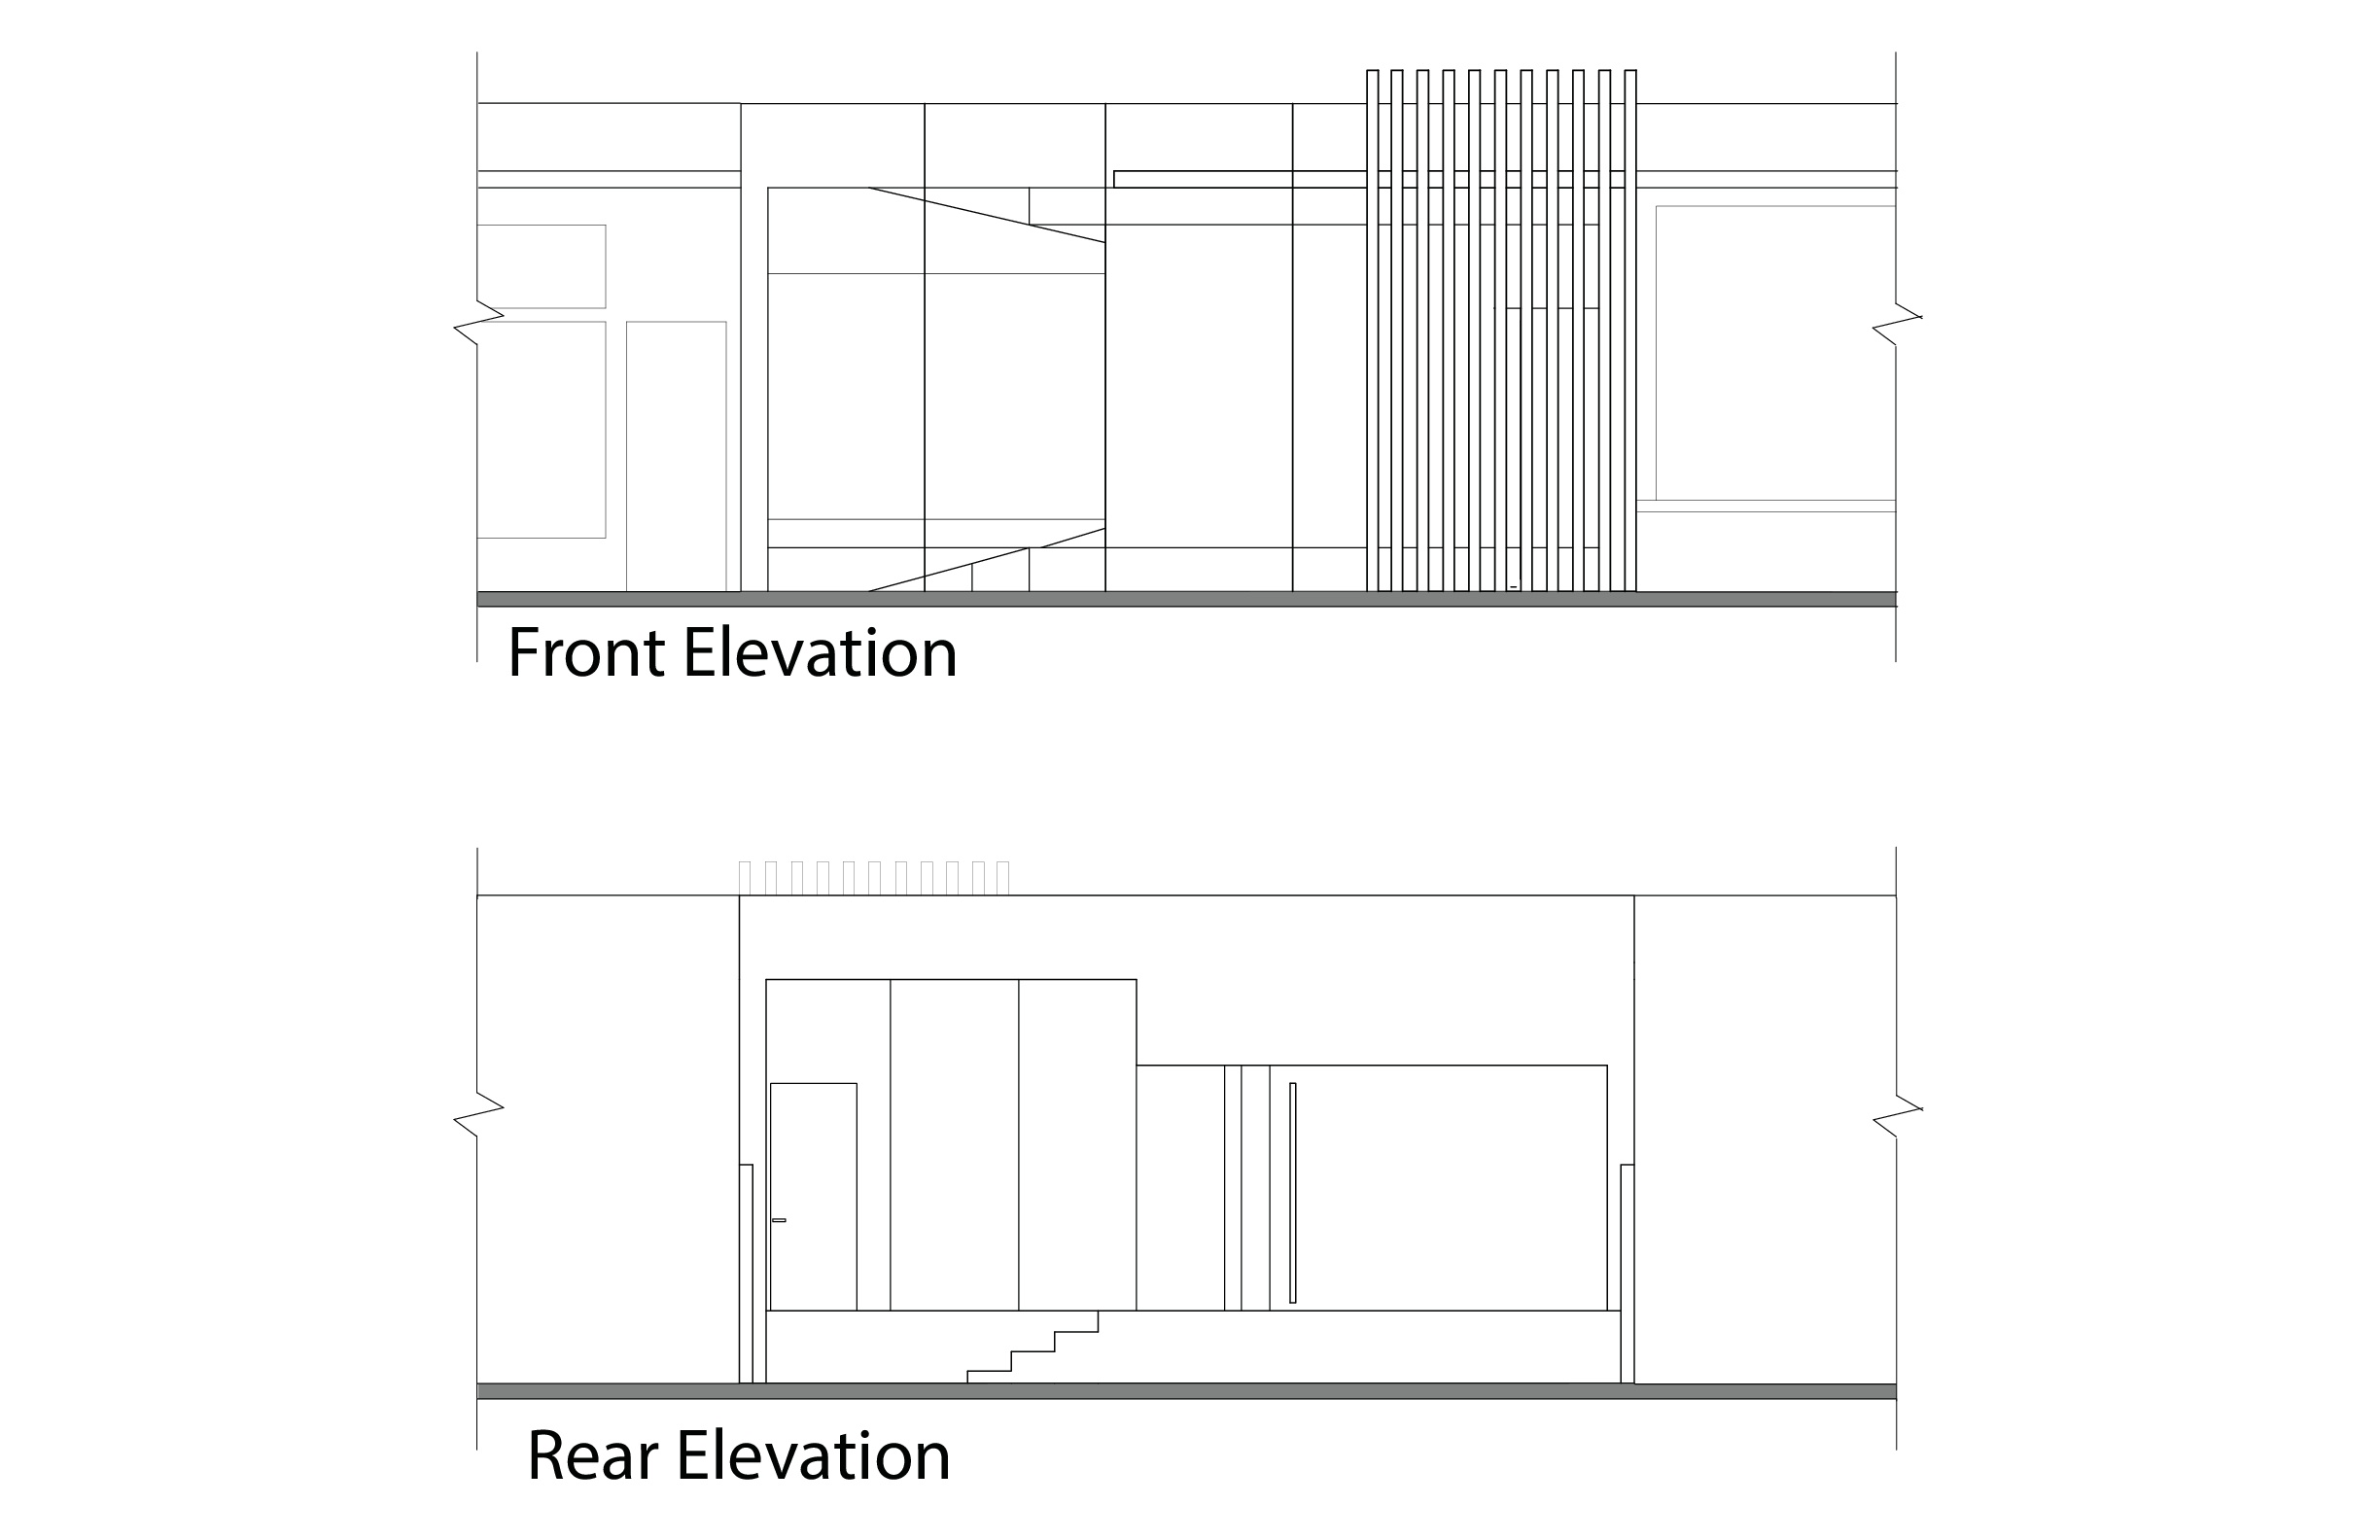 Front_&_Rear_Elevations-001.jpg